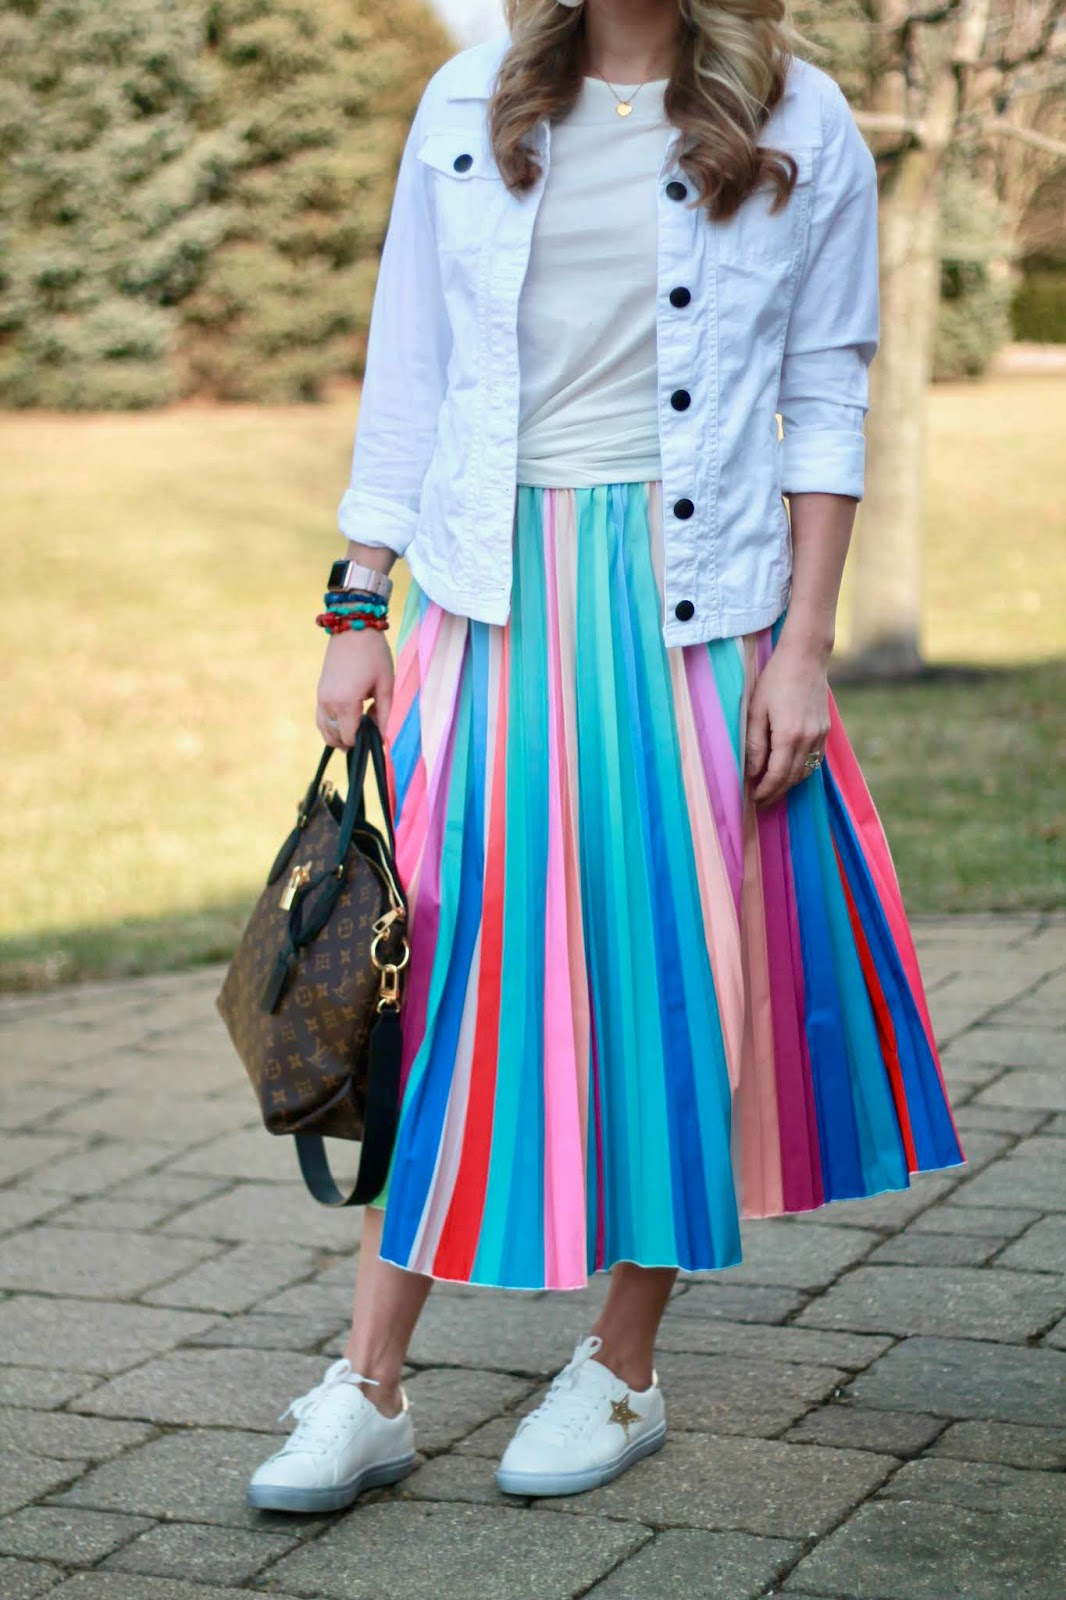 rainbow pleated skirt, pleated skirt 3 ways, cognac leather jacket, LV flower zippered tote, red eyelet blouse, white denim jacket, cognac slouch boots